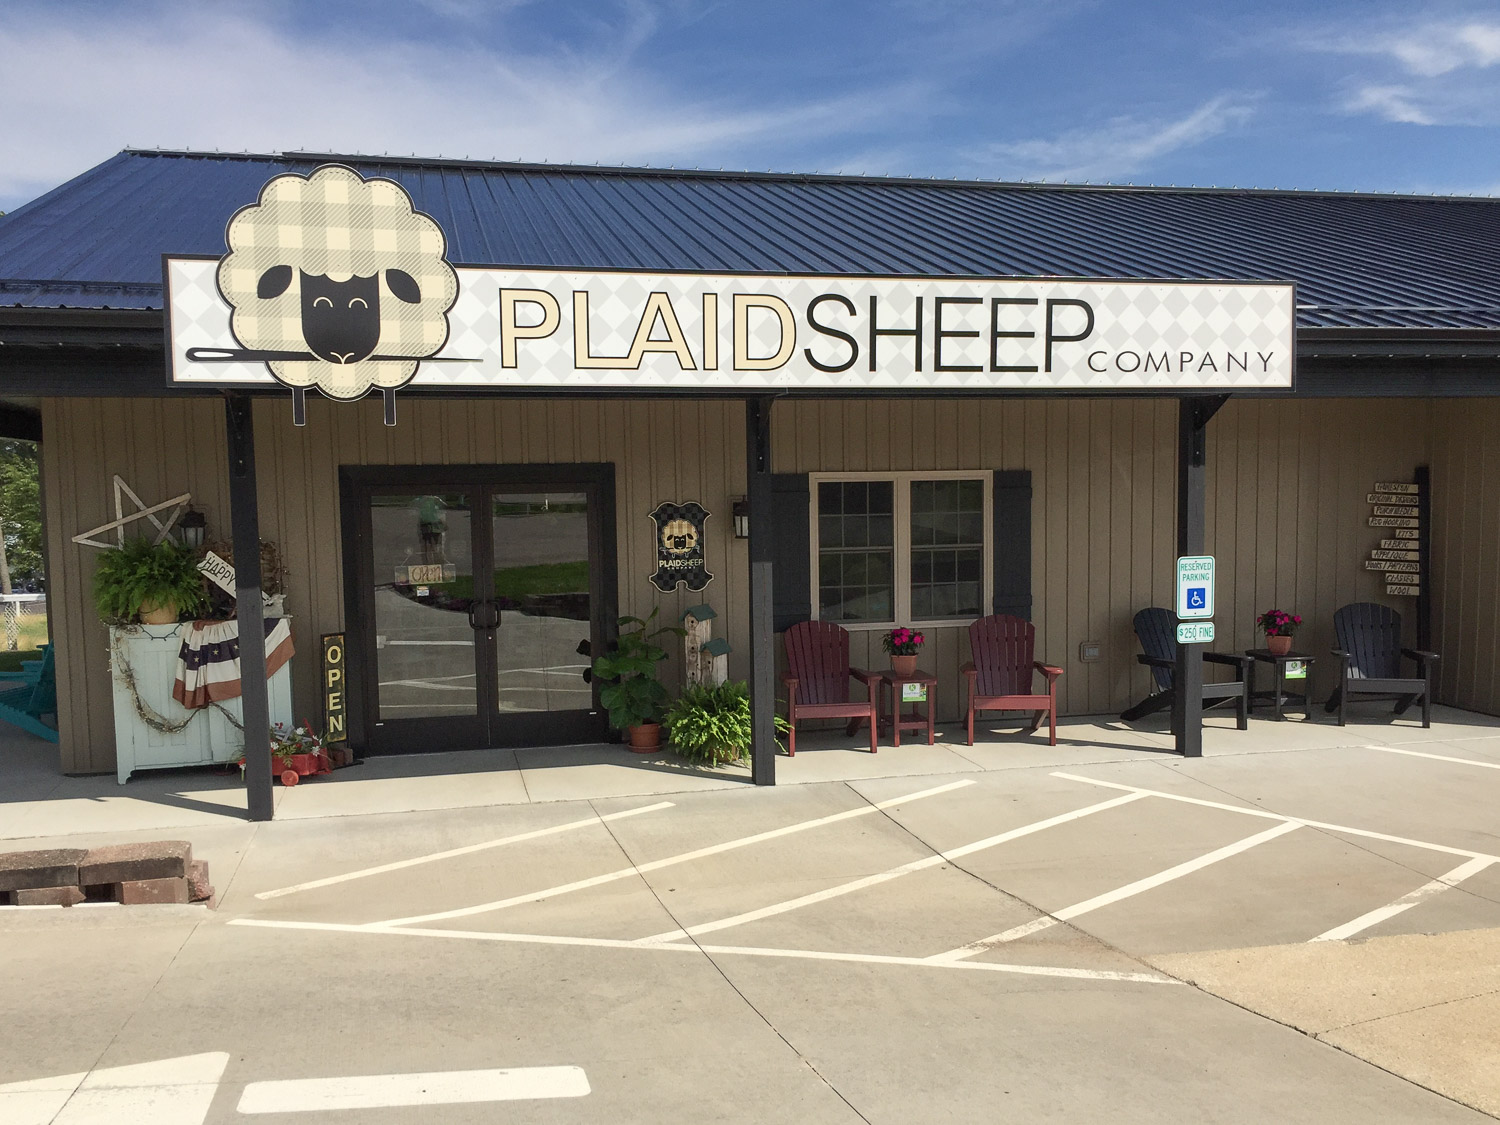 The Plaid Sheep in Berlin Ohio.